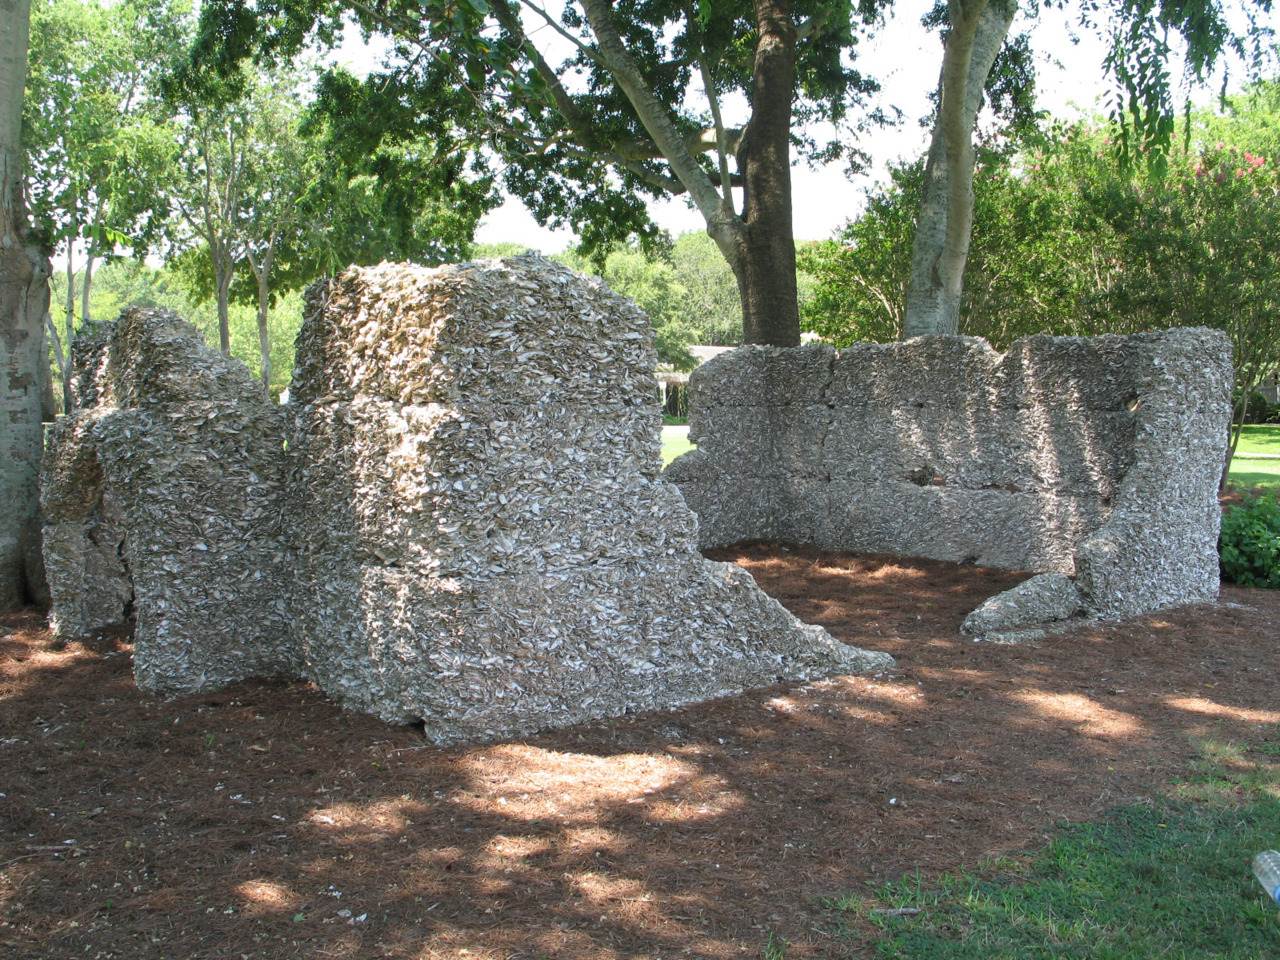 "knowledgeequalsblackpower:  Shell and lime (tabby) slave quarters built by the enslaved Africans on Daufuskie Island in South Carolina.  Daufuskie Island was originally inhabited by the Cusabo and then later the Yamacraw Native Americans. Native American pottery dating back to as far back as 9,000 years ago has been found on the island and represents some of the oldest artifacts found in the USA.   On Daufuskie Island, the special nutrient soil and climate was ideal for growing a silky, rare type of cotton that became known as ""Sea Island Cotton"". The Sea Island Cotton industry was the most profitable crop in the United States at that time (even more than tobacco). It was also the most significant crop requiring slave labor, thus prompting the slave trade with thousands arriving on Daufuskie and nearby islands from the west coast of Africa. Slavery continued to exist on Daufuskie Island until the end of the Civil War.   When Union forces overran Beaufort-area islands early in the Civil War, white plantation owners fled, leaving property and slaves behind. After the war, Daufuskie's remoteness allowed Gullah to survive and flourish through the generations.  Most native residents of Daufuskie today are descendants of slaves who live off of oystering and fishing. (via Daufuskie Living, South Carolina Information Highway, and Frommer's Portable Savannah )"